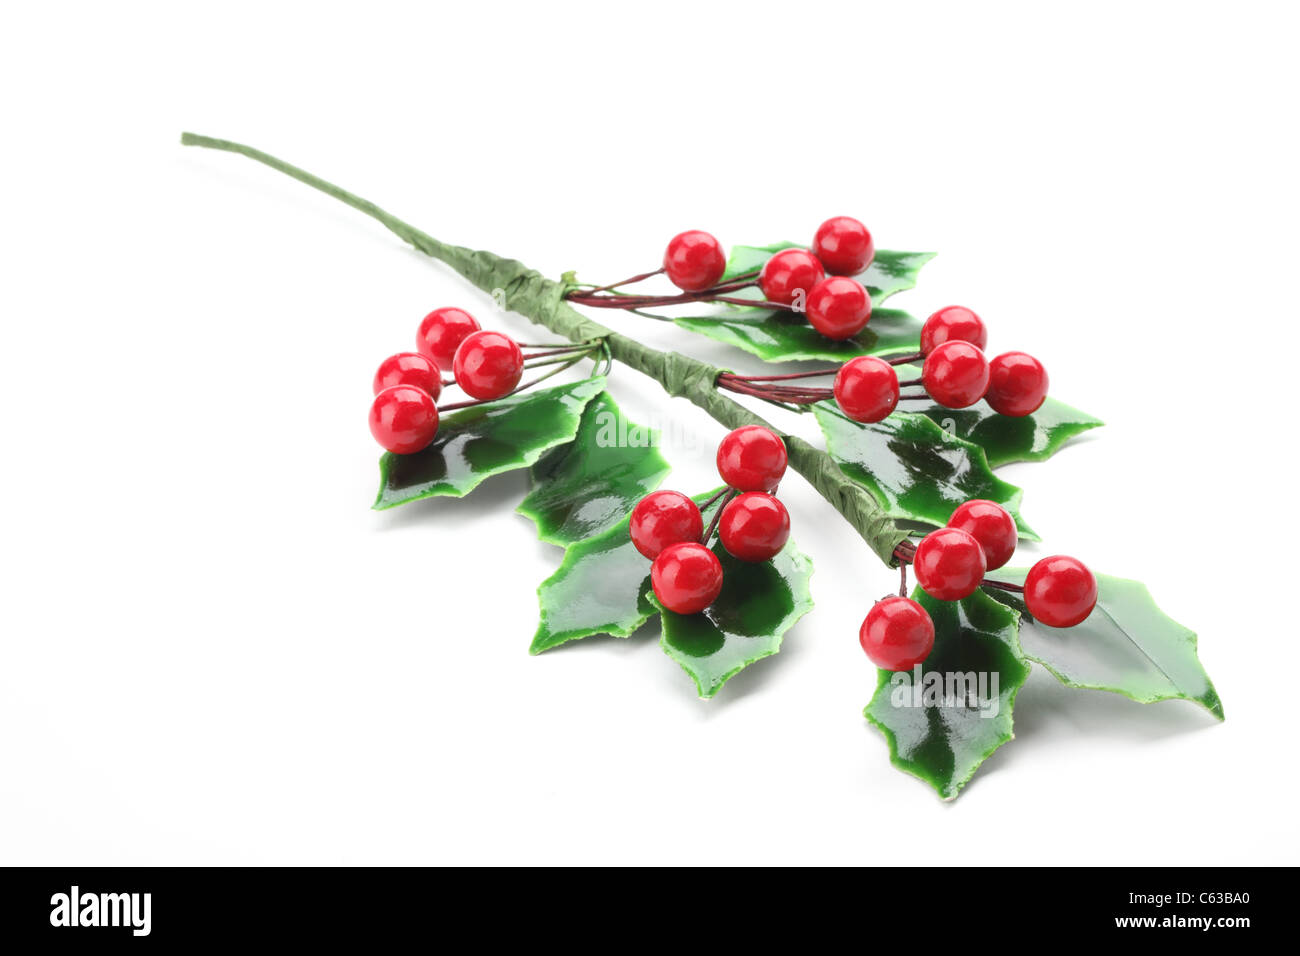 Branch of holly with red berries, isolated on white background. - Stock Image